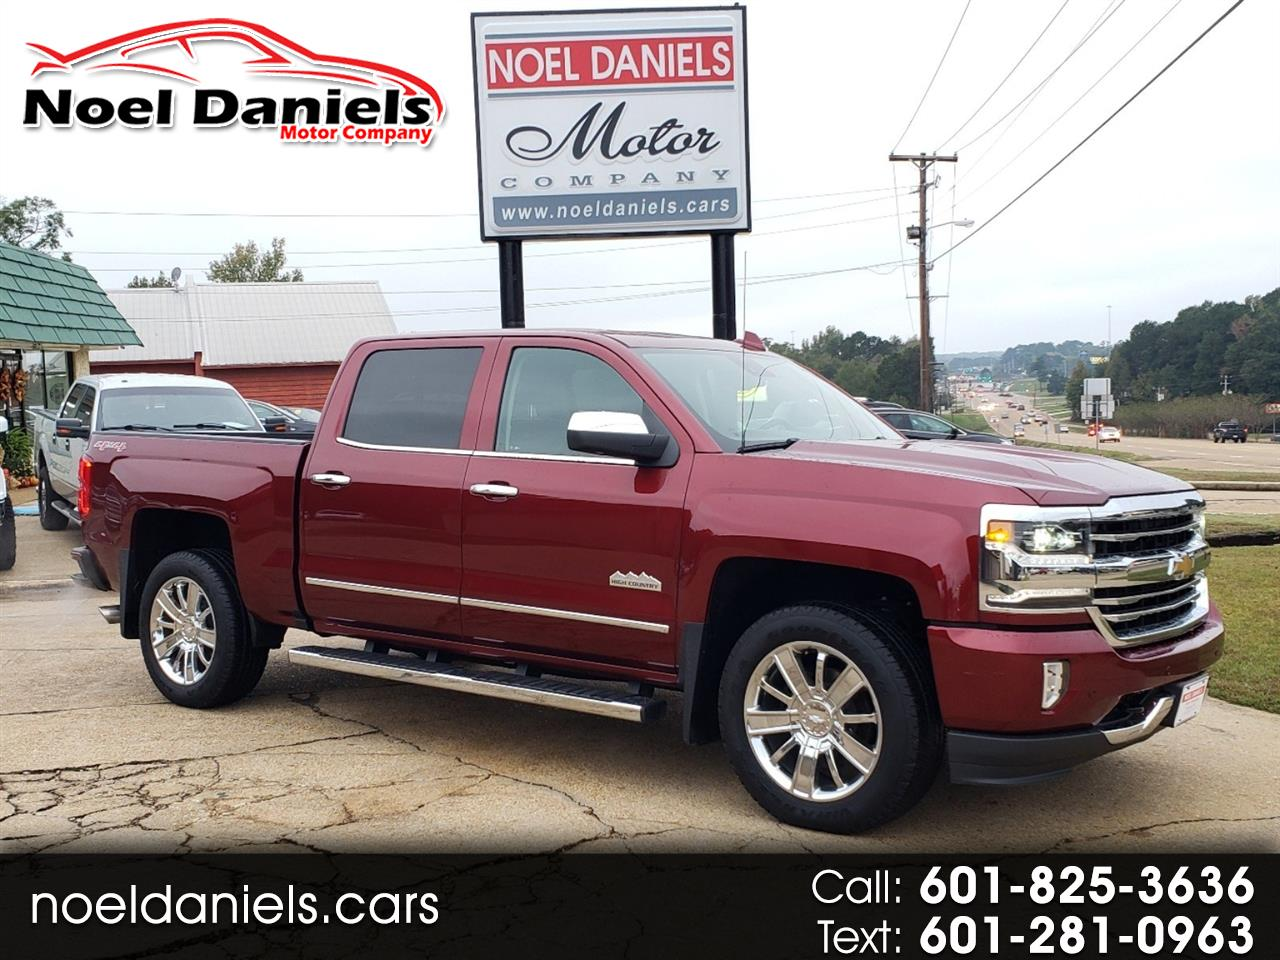 2017 Chevrolet Silverado 1500 4WD Crew Cab High Country 6.2L V8